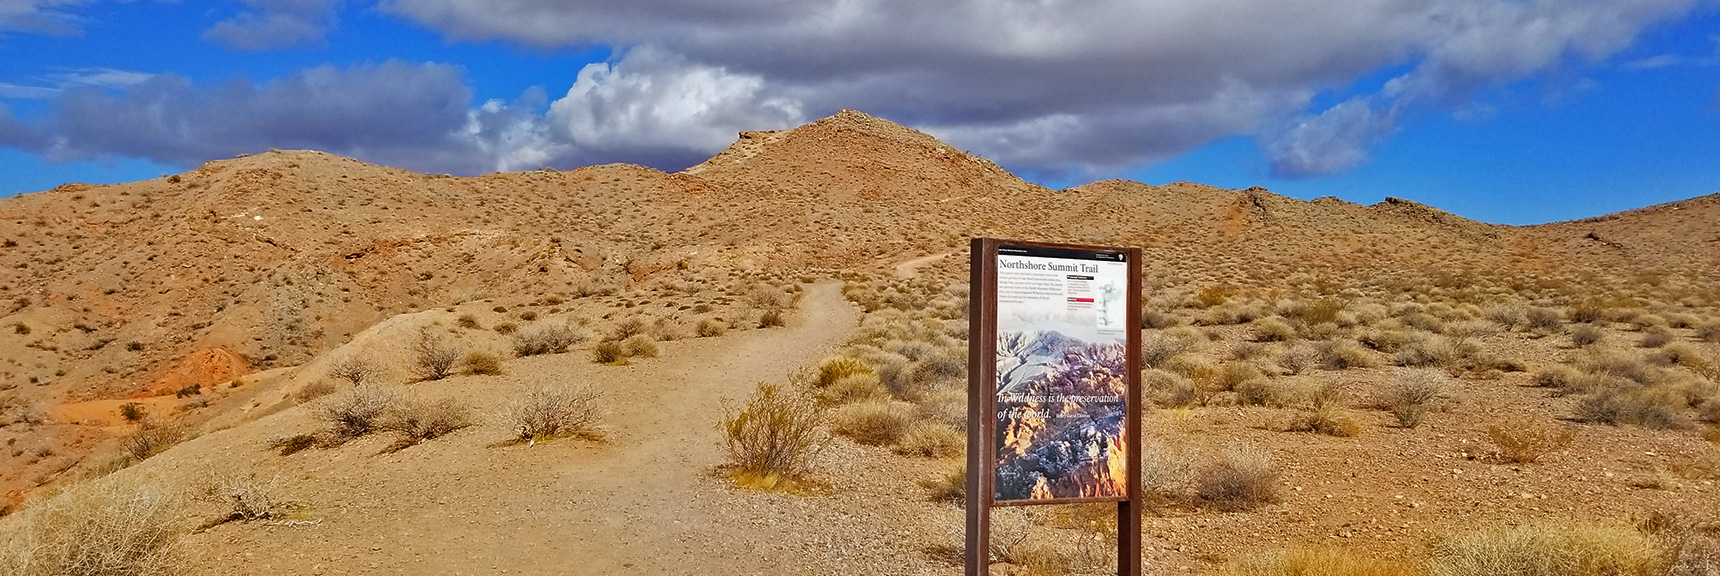 Trailhead to Northshore Summit and the Northern Bowl of Fire Beyond   Northern Bowl of Fire   Lake Mead National Recreation Area, Nevada